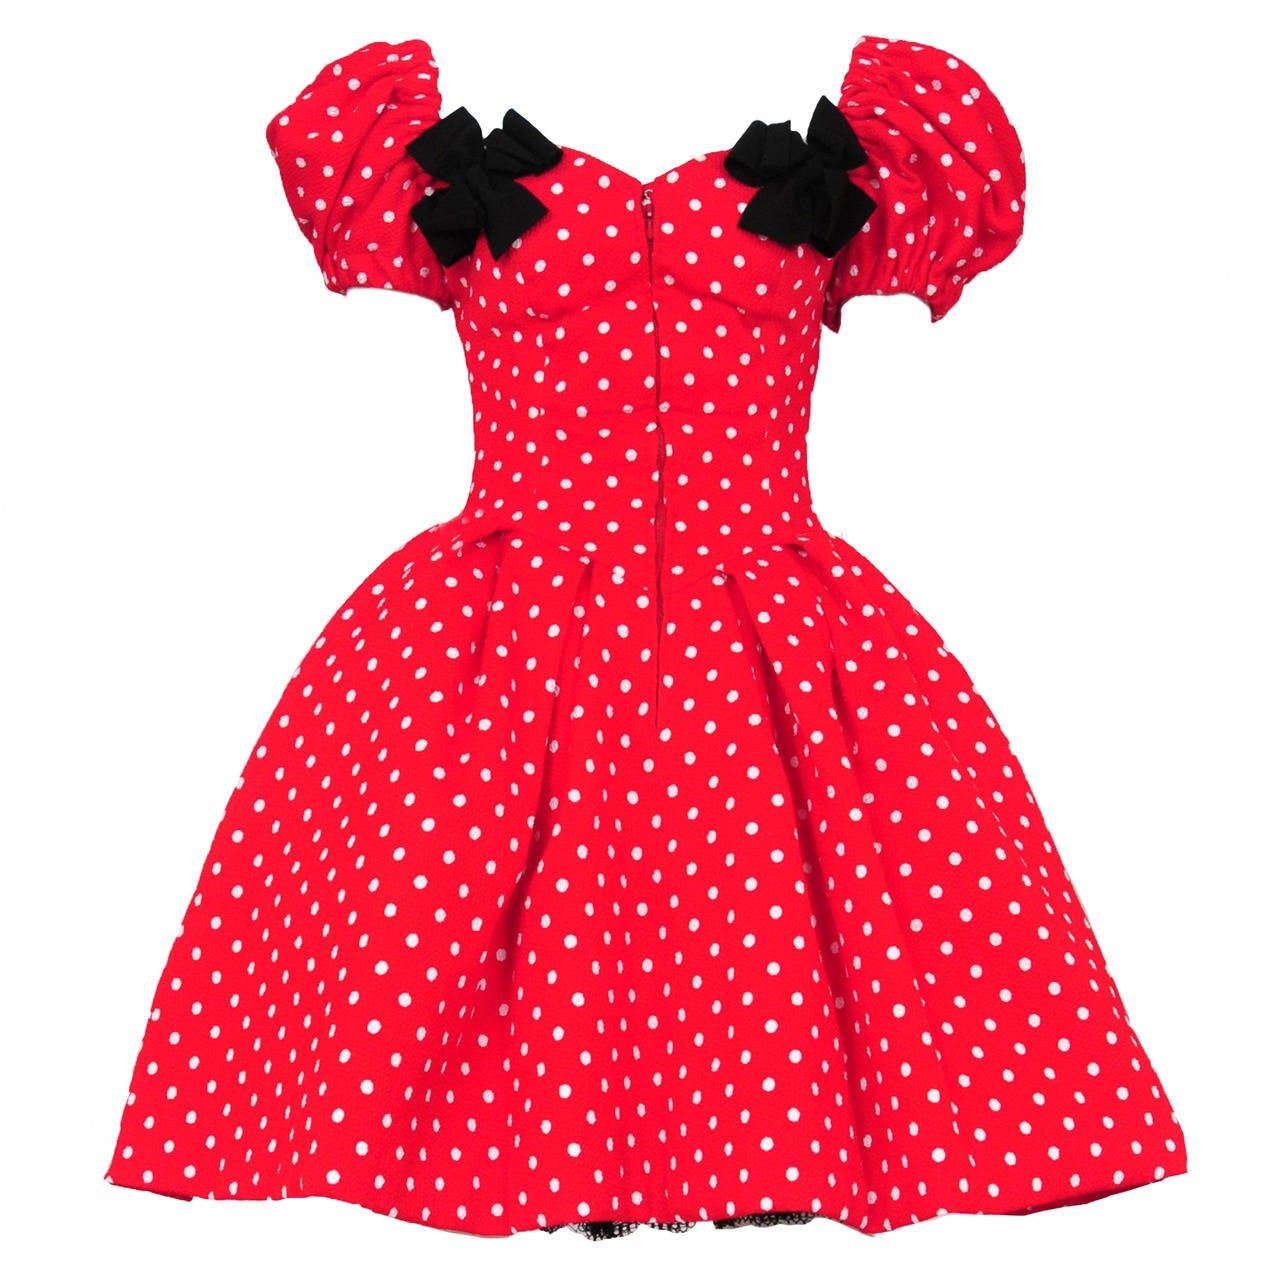 Christian Lacroix Polka Dot Cocktail Dress 1